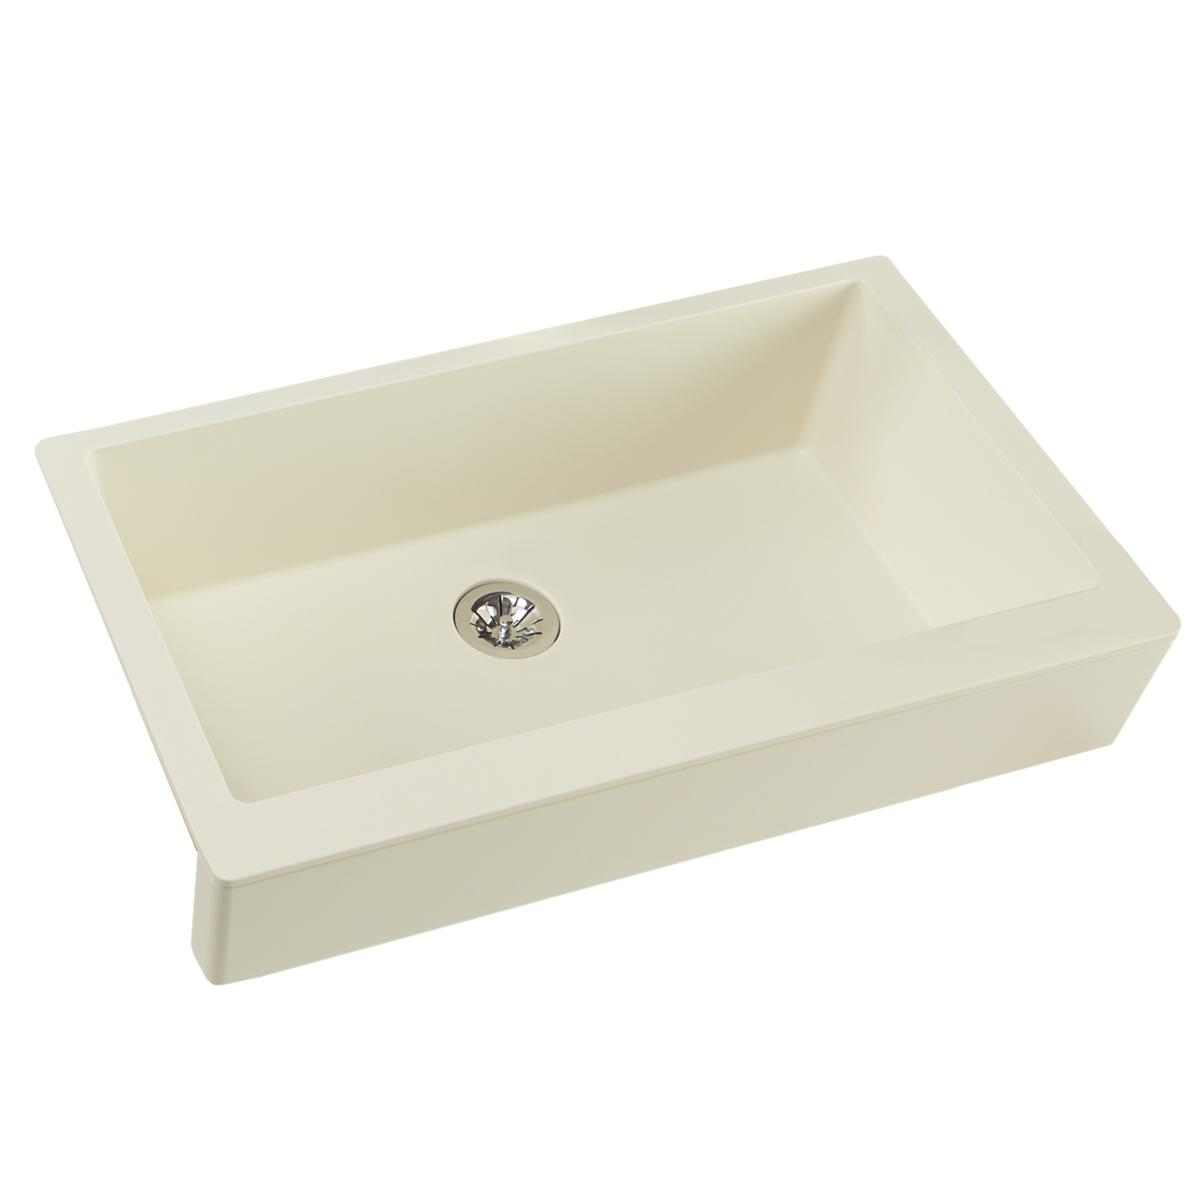 "Elkay Quartz Luxe 35-7/8"" X 20-15/16"" X 9"" Single Bowl Farmhouse Sink With Perfect Drain, Parchment"